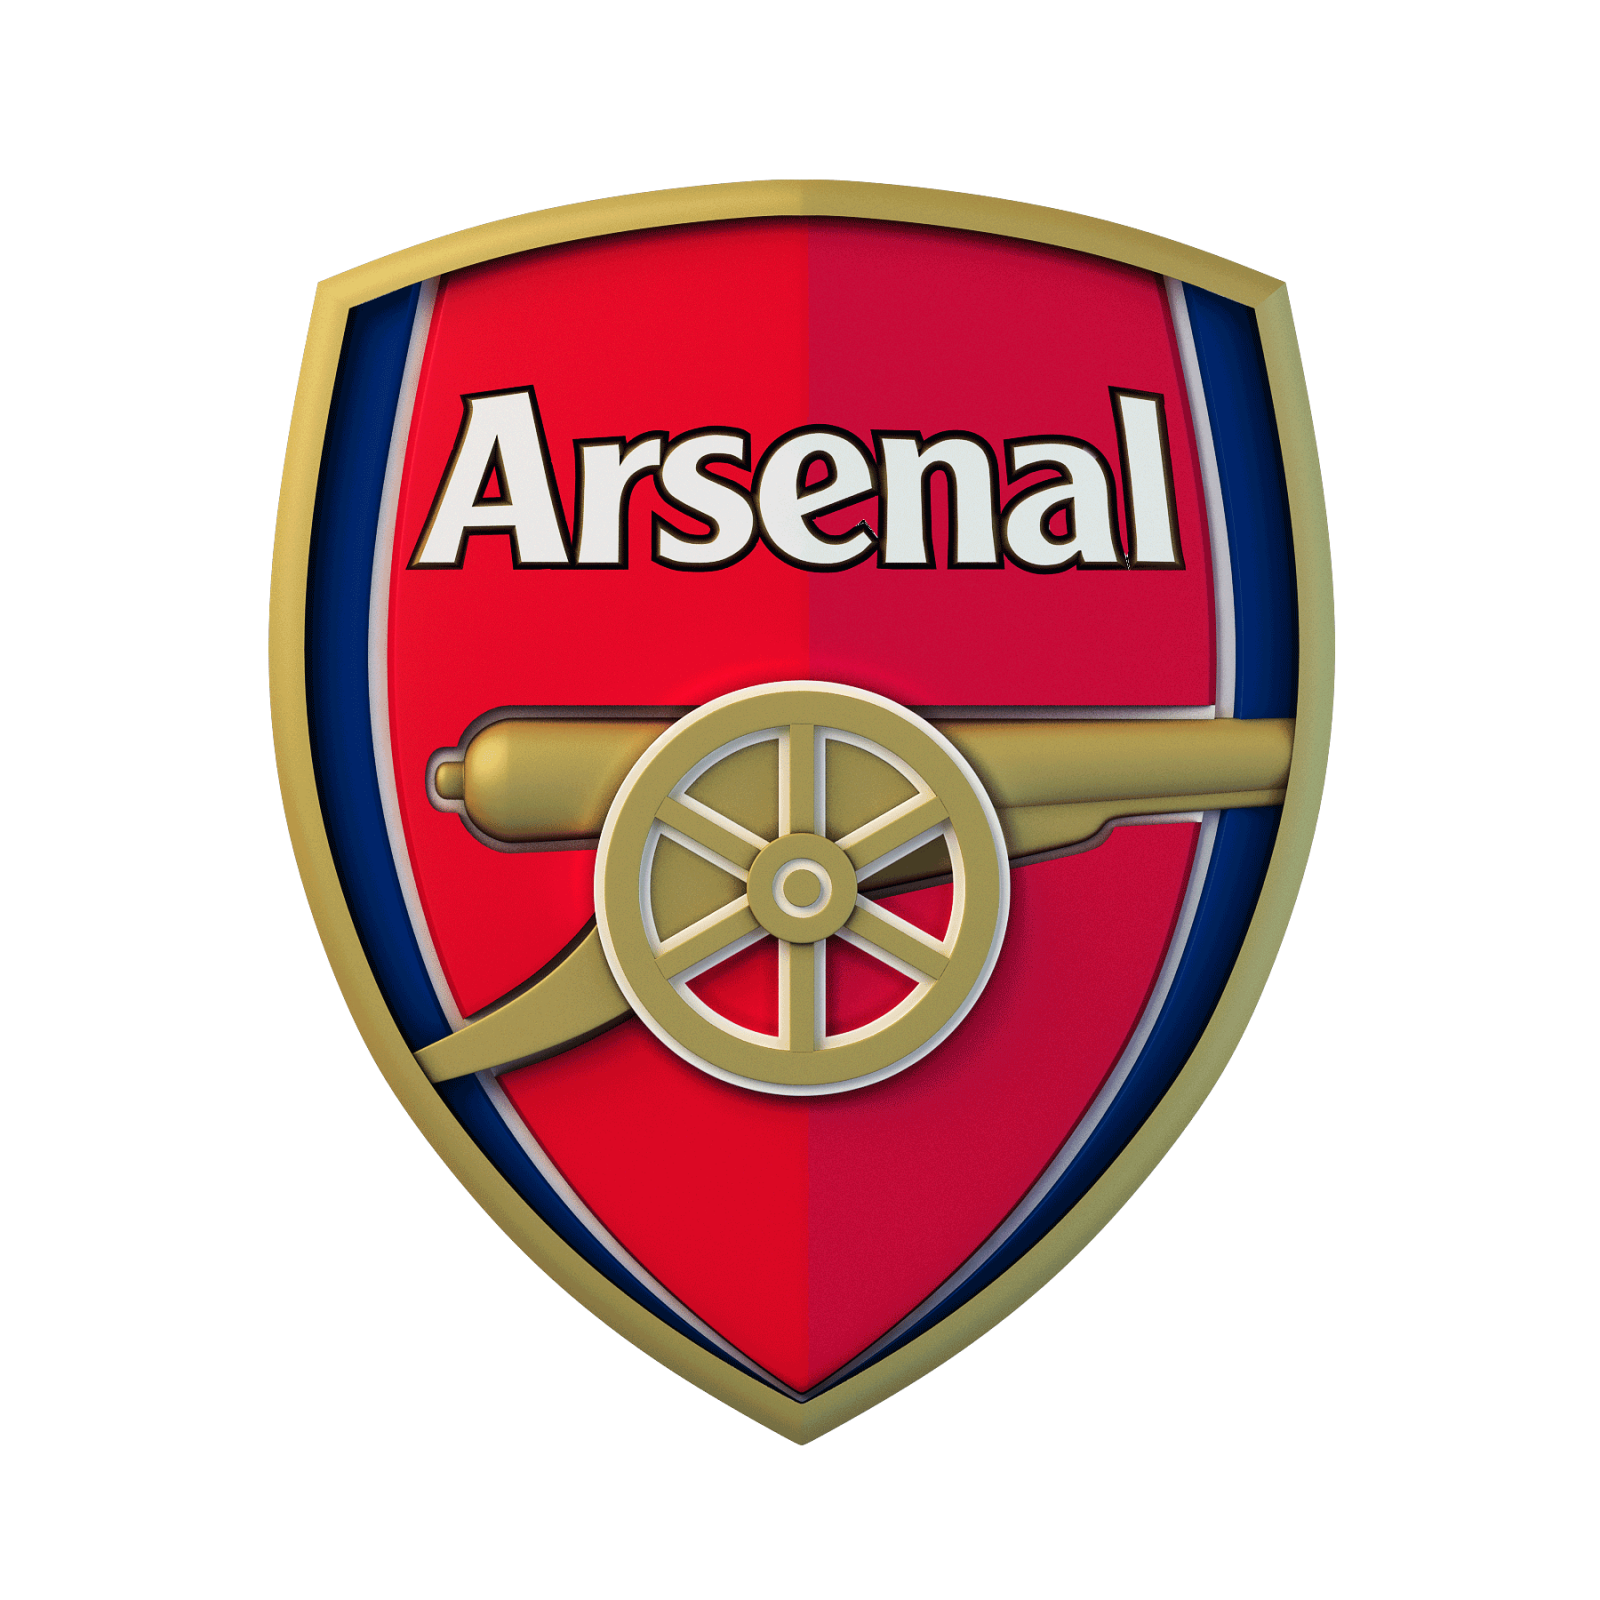 Arsenal Logo Transparent Png Free Logo Arsenal Clipart Images Free Transparent Png Logos